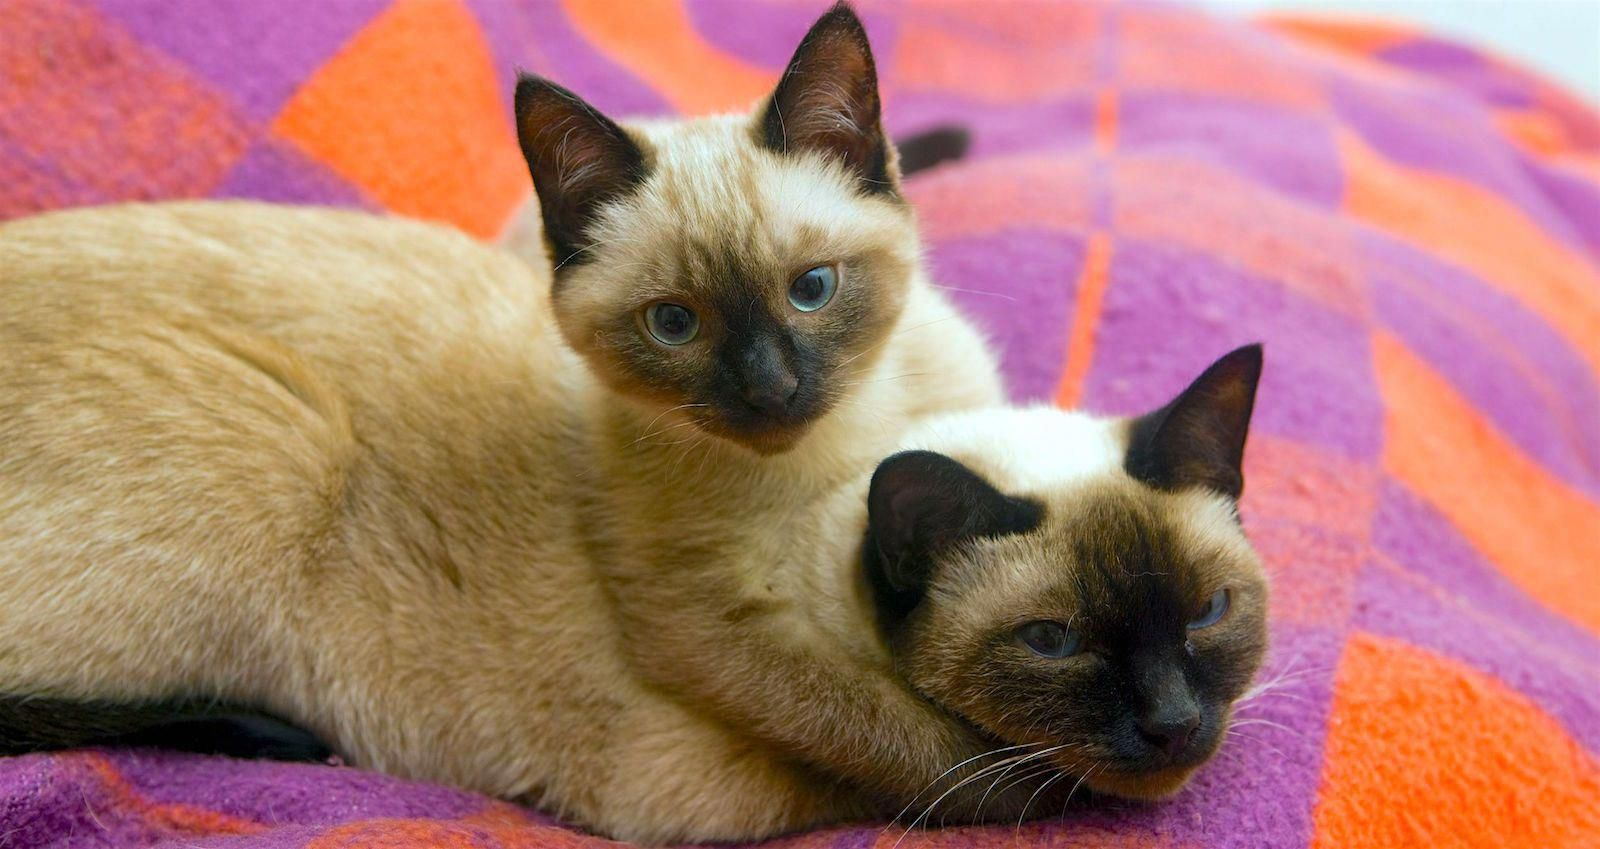 5 Things To Know About Siamese Cats Cat Breeds Siamese Cat Breeds Cat Care